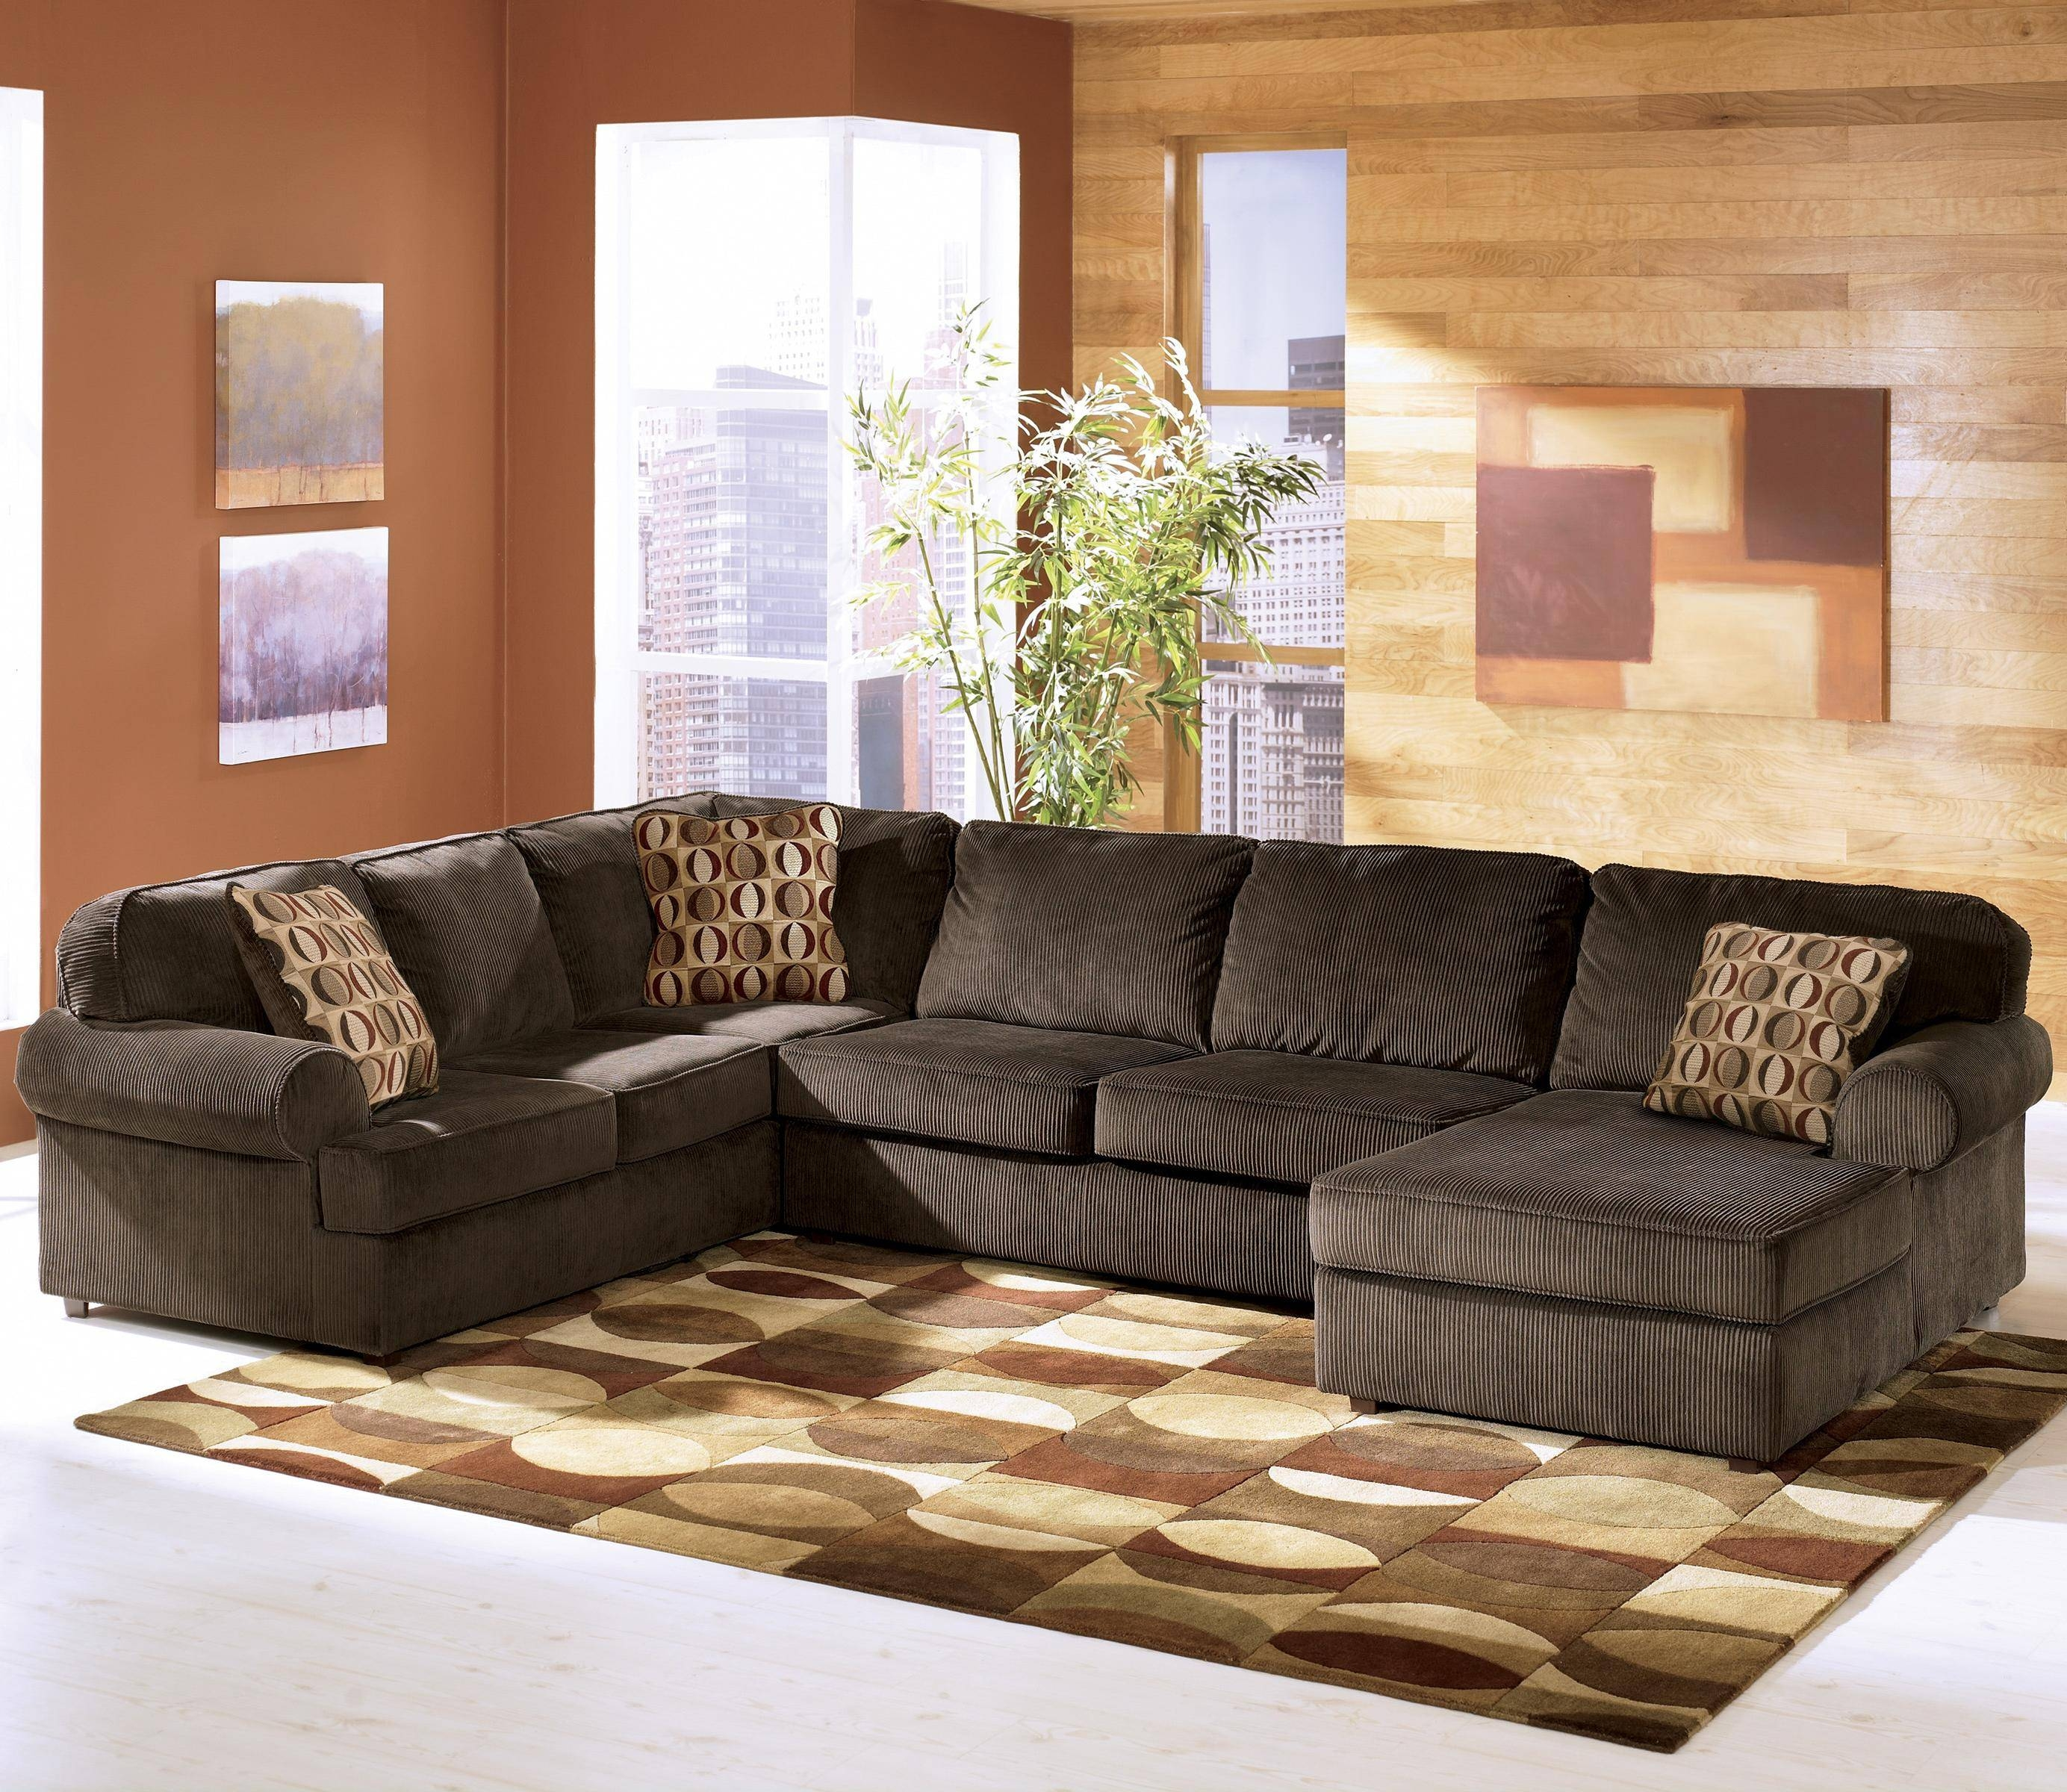 Ashley Furniture Vista - Chocolate Casual 3-Piece Sectional With for Ashley Furniture Corduroy Sectional Sofas (Image 8 of 15)